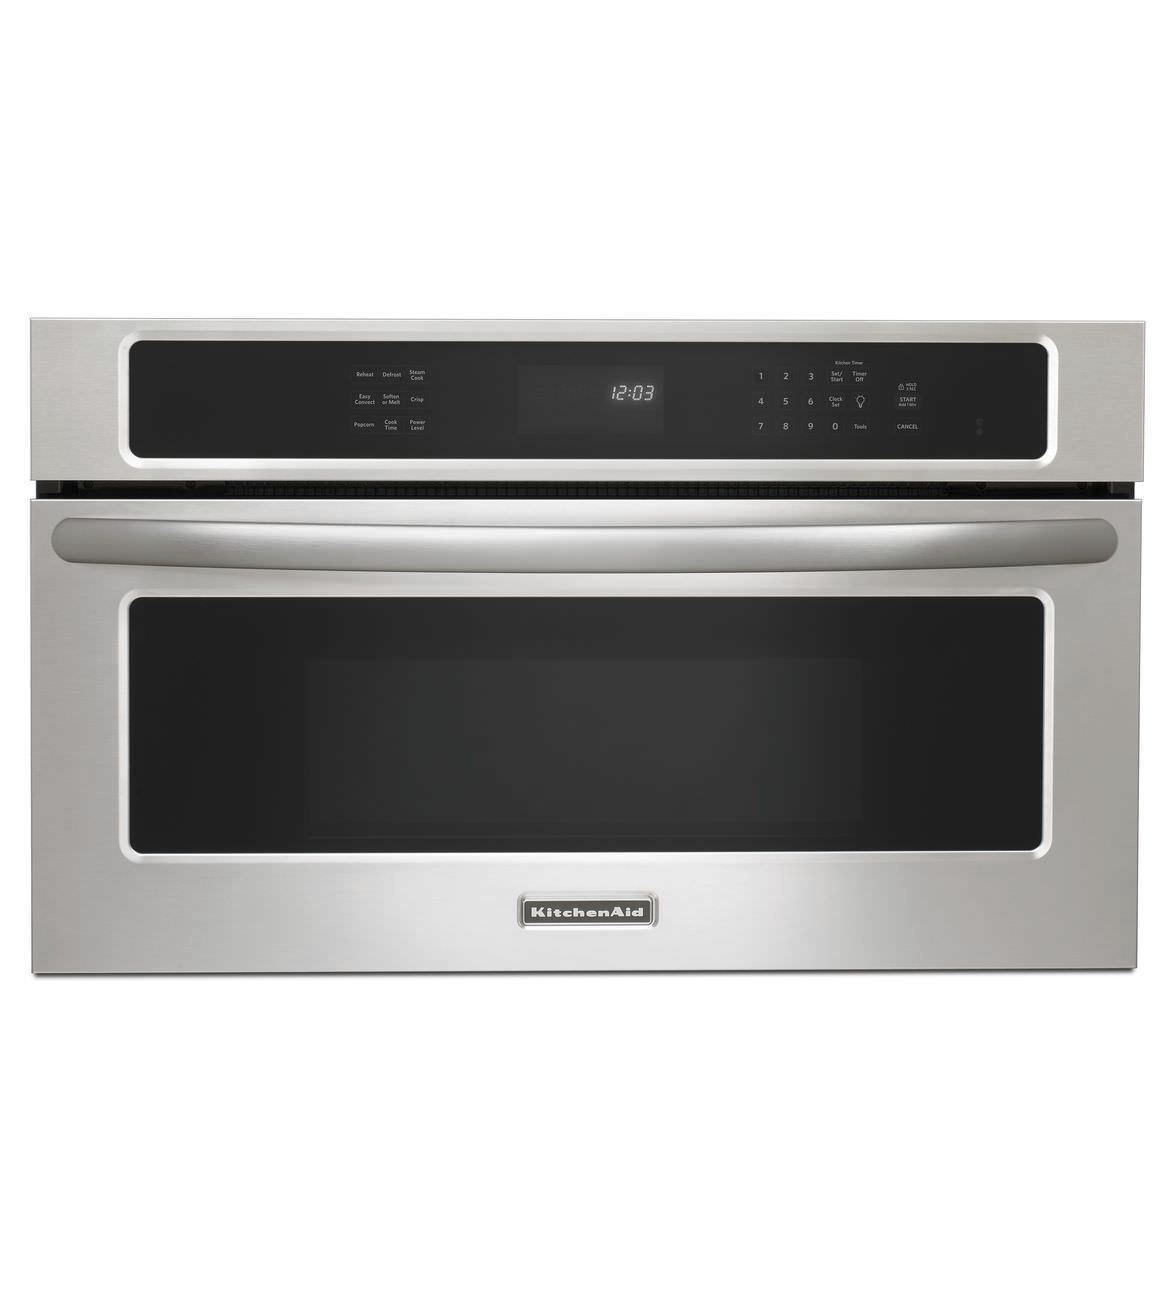 kitchenaid microwave convection oven. Electric Oven / Microwave Convection Built-in - KBHS109BSS Kitchenaid I